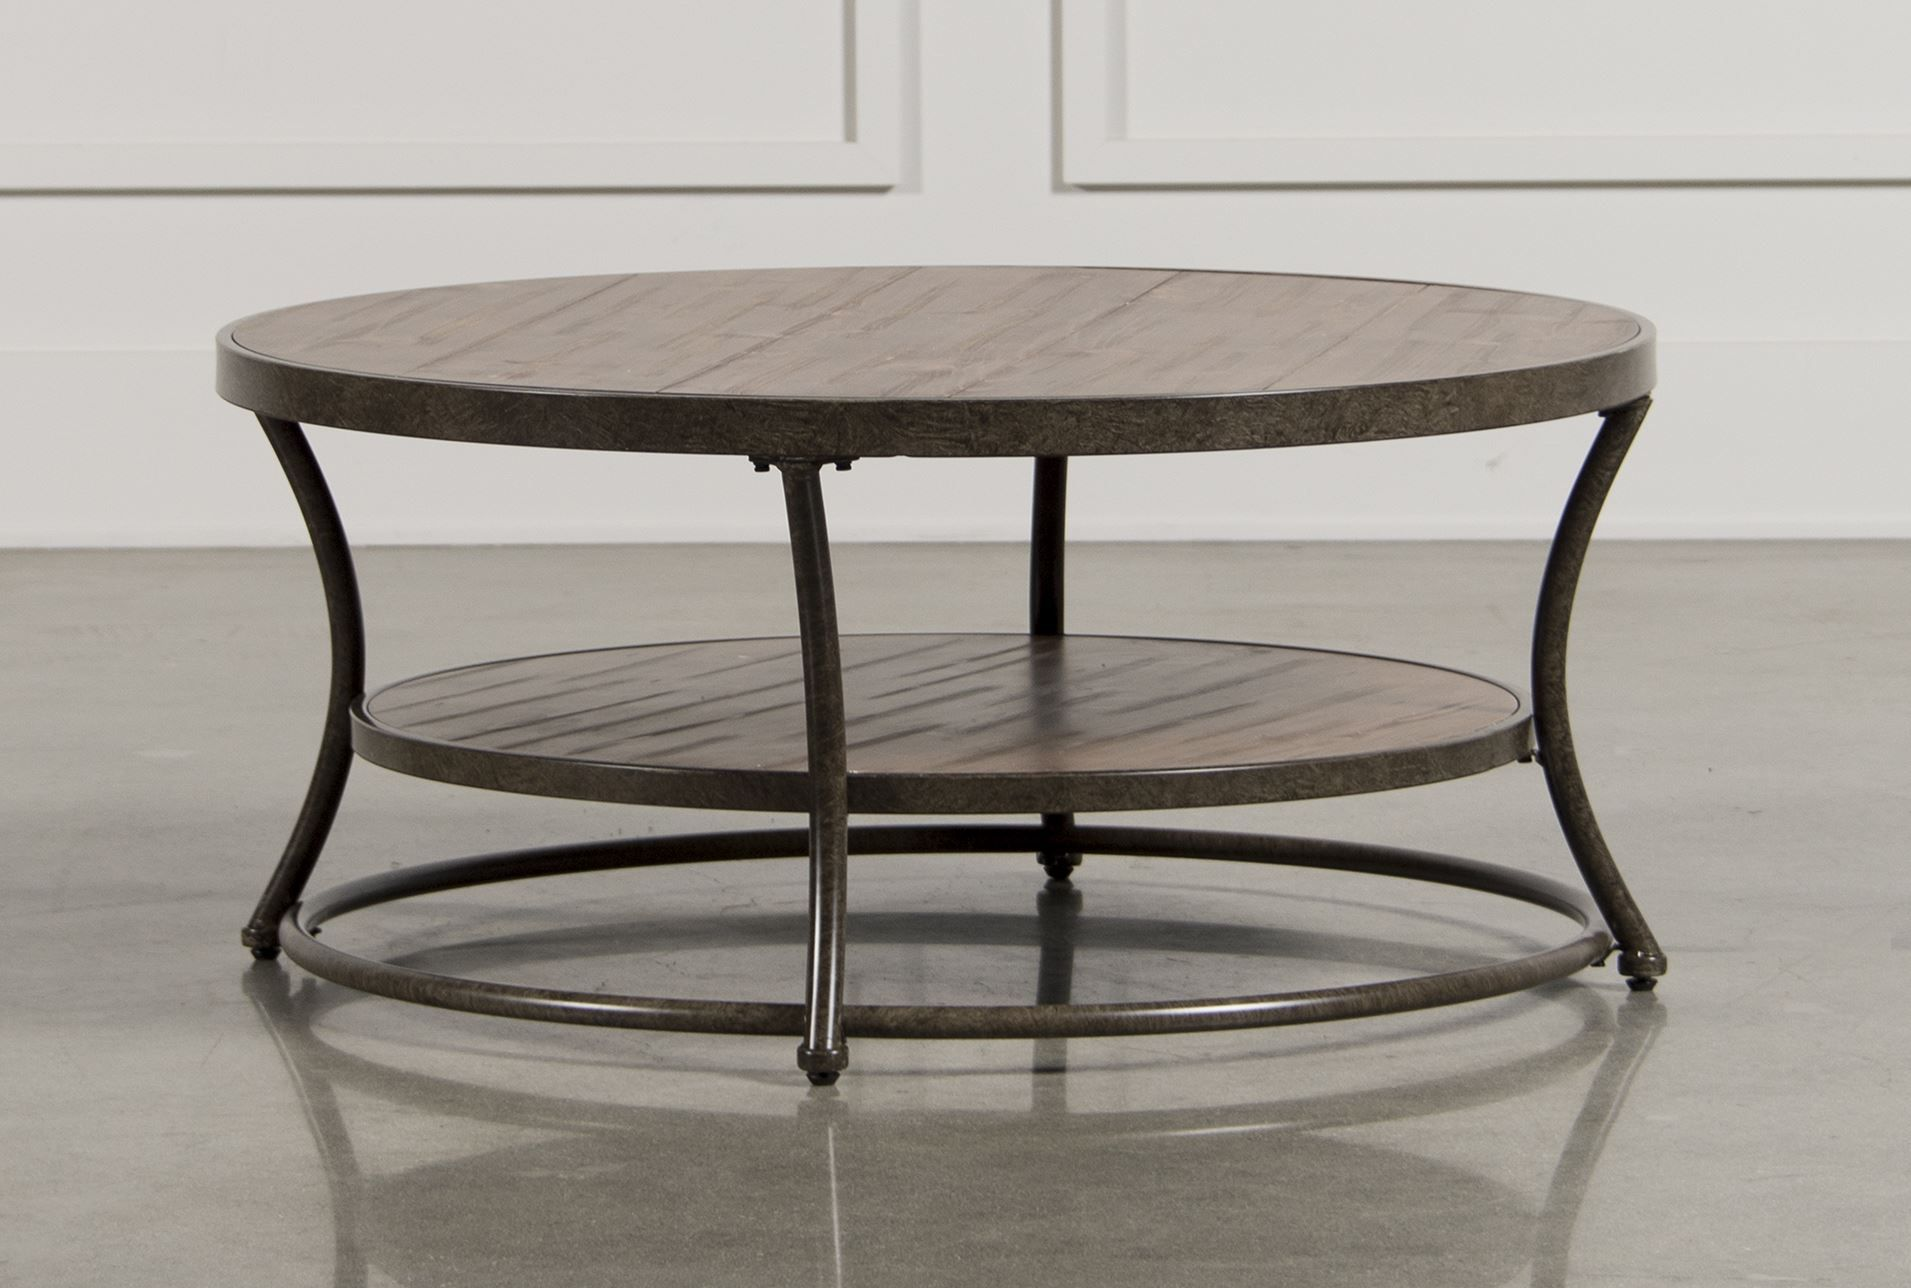 Good Price 295 Nartina Round Cocktail Table Signature Coffee Table Table Home Living Room [ 1288 x 1911 Pixel ]